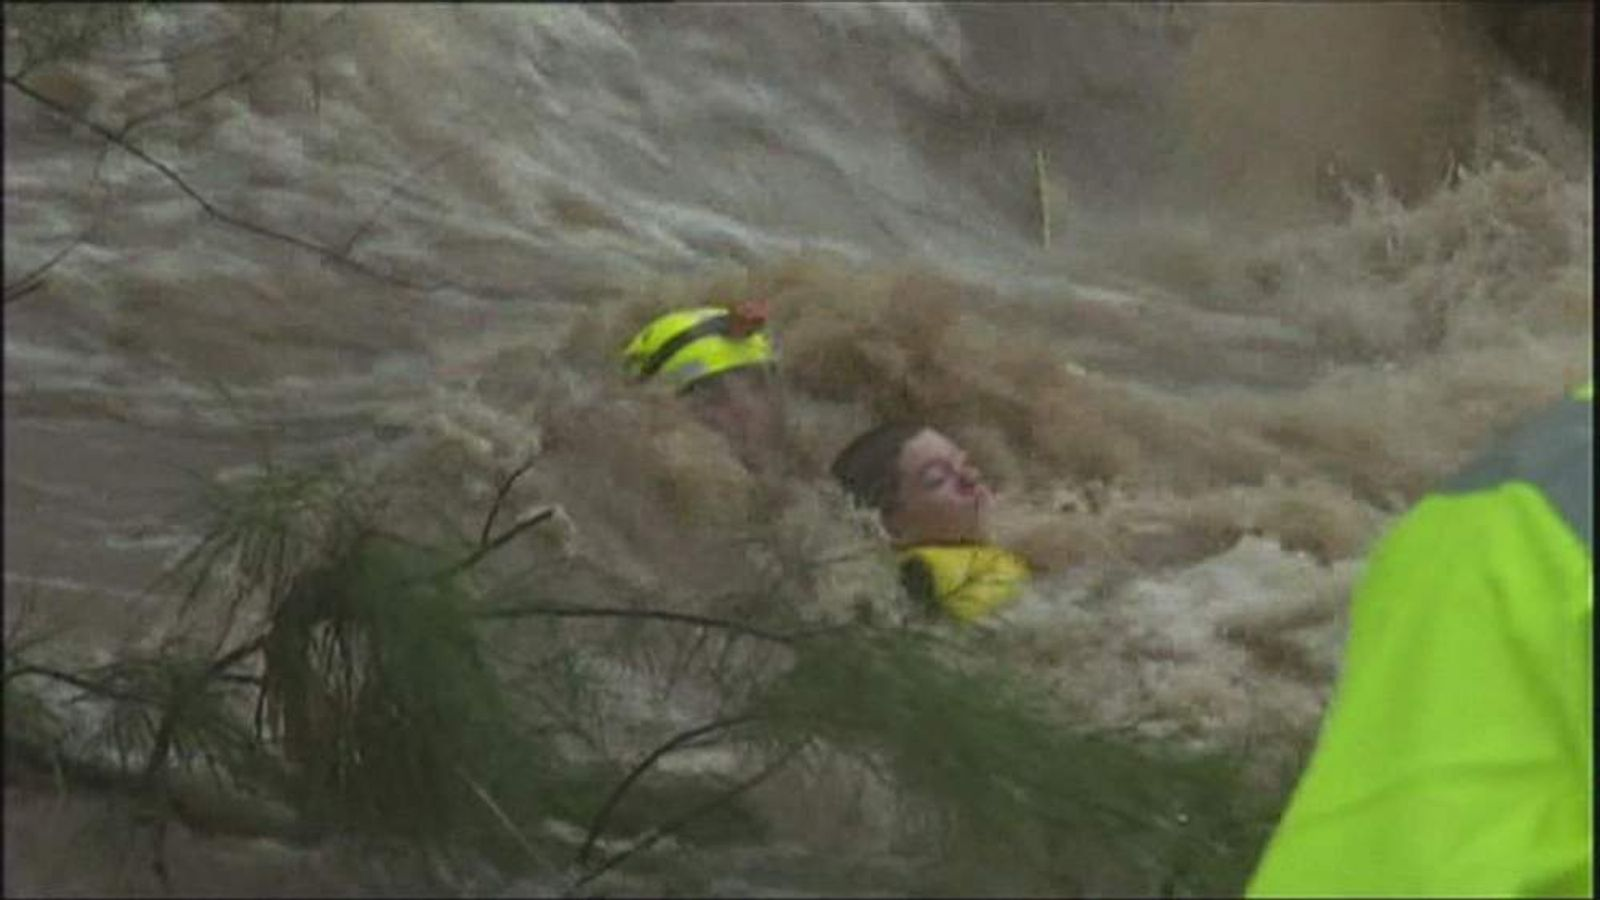 oy, 14, rescued in Australia floods